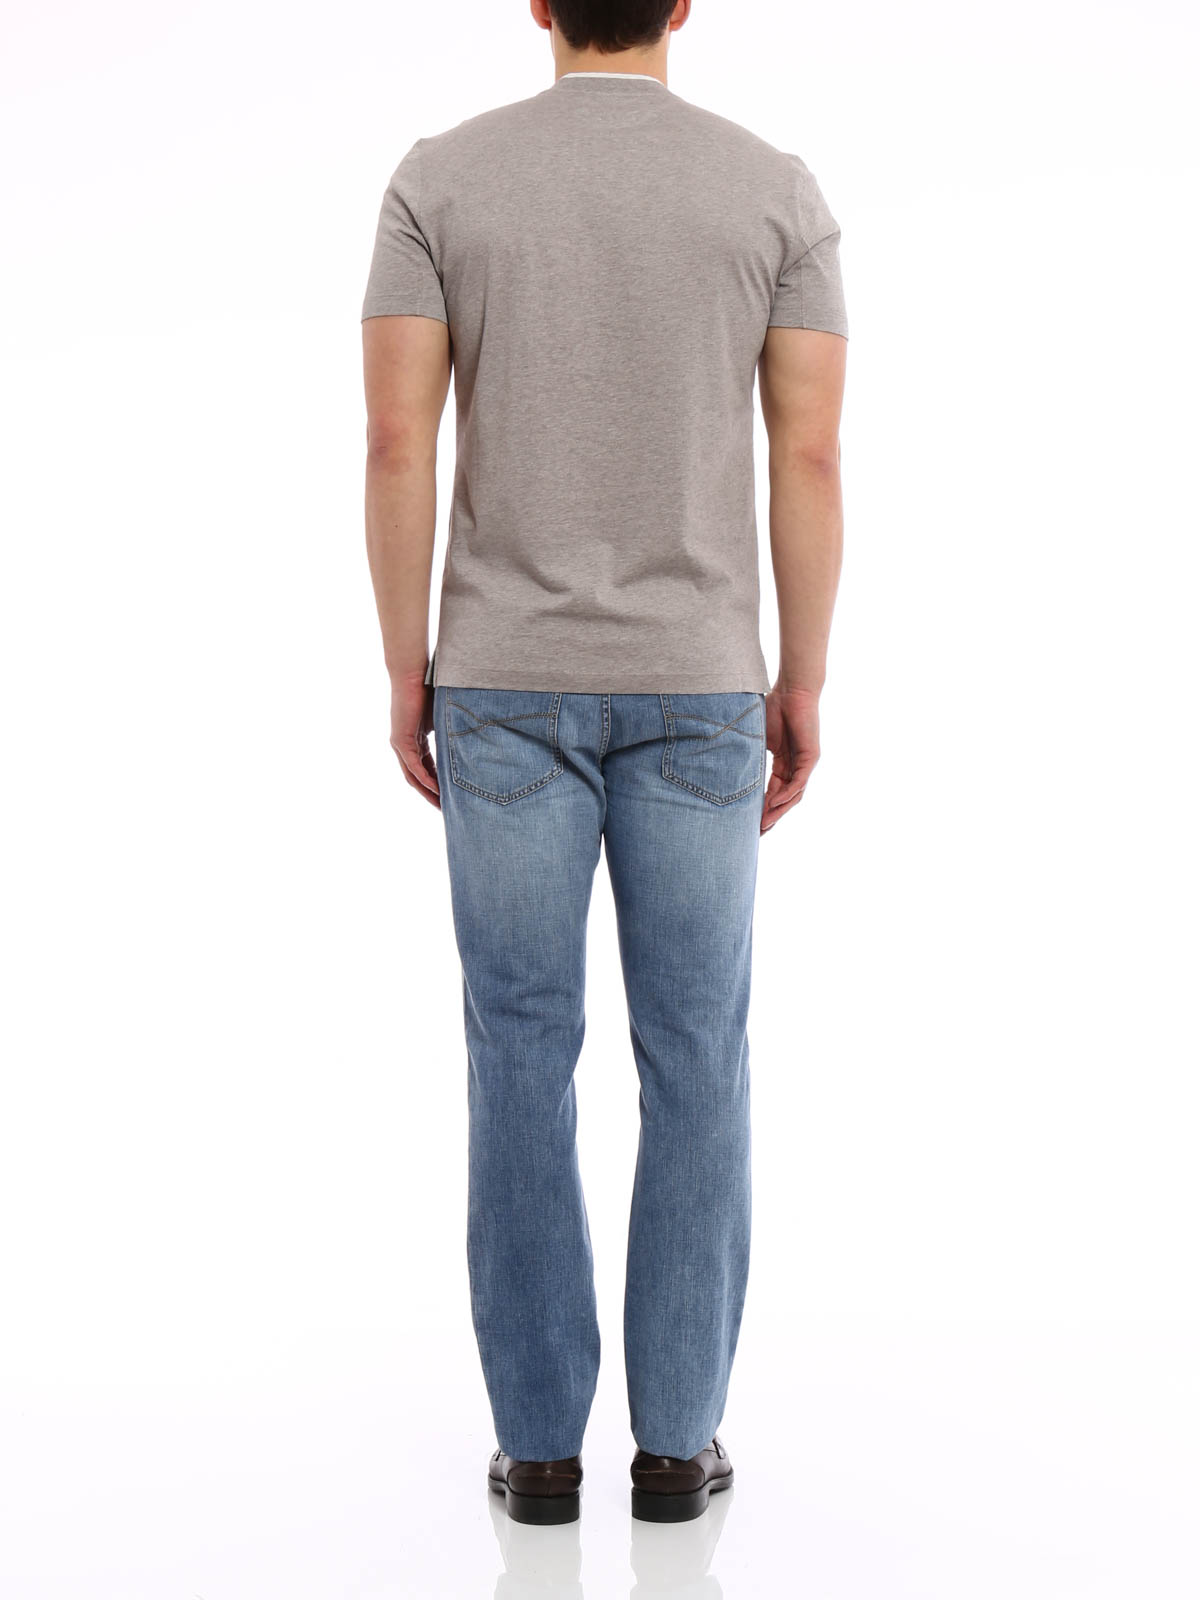 Layered v neck t shirt by brunello cucinelli t shirts for V neck t shirt online shopping